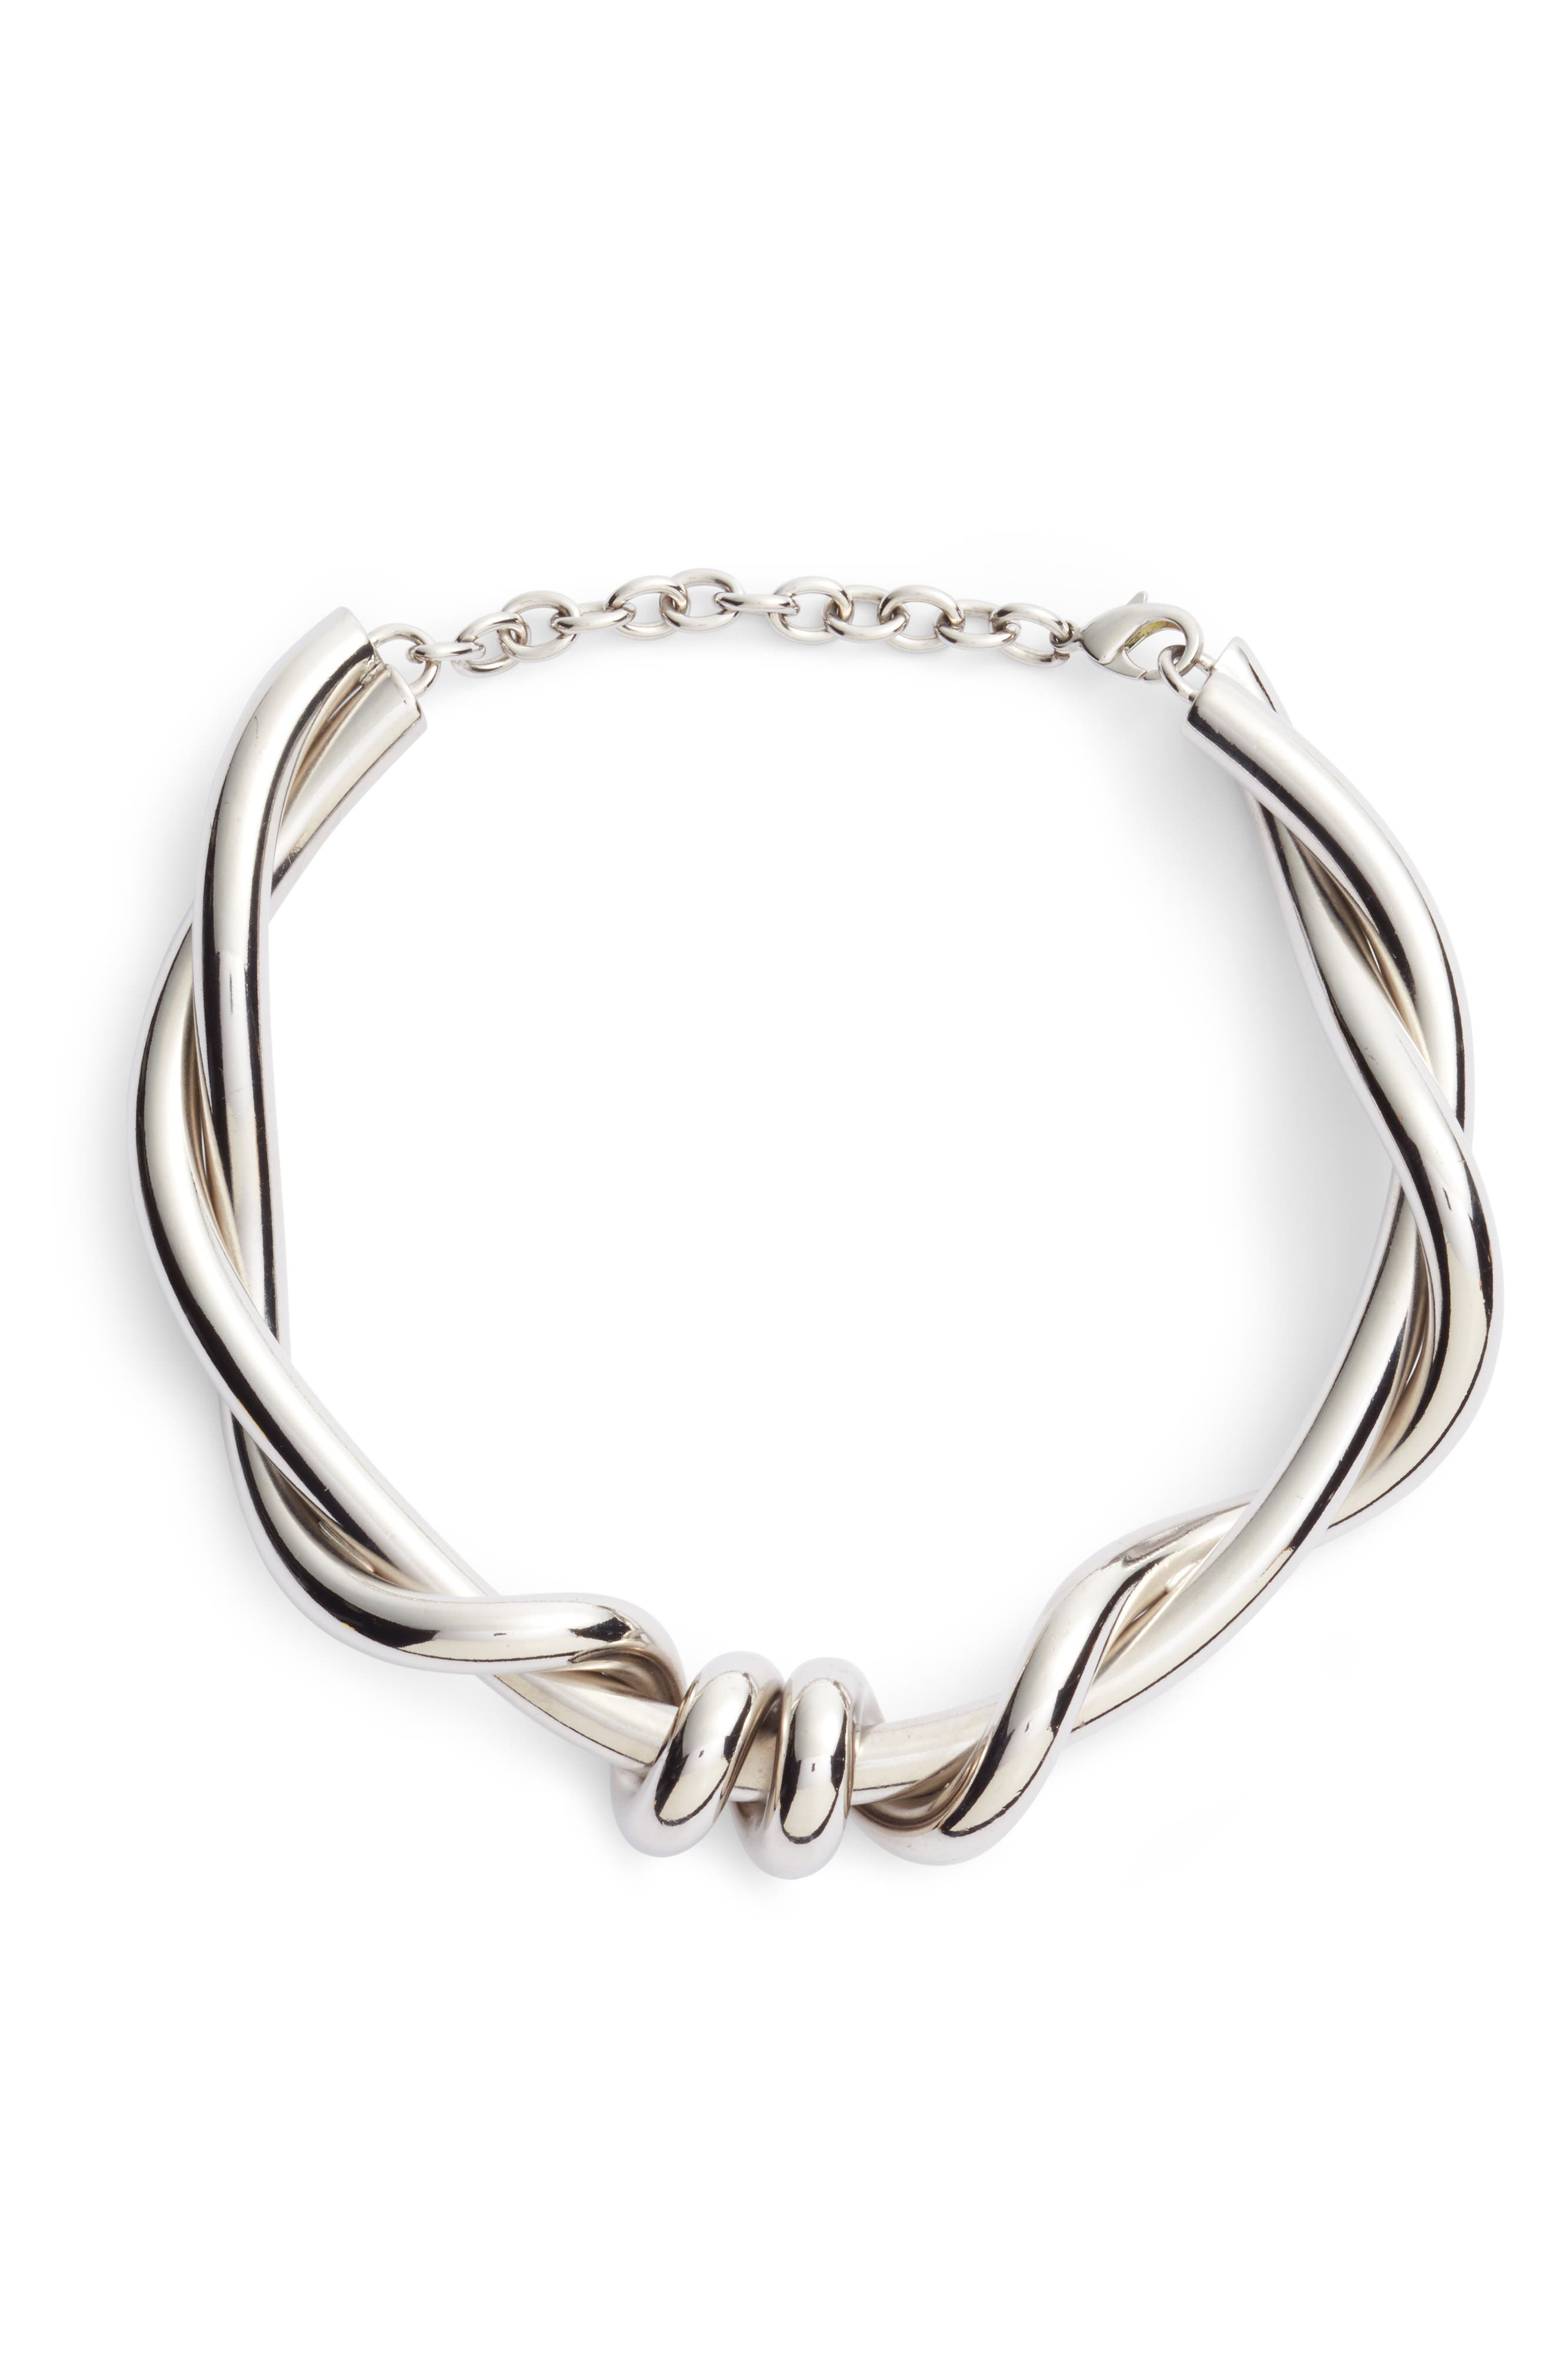 Modern Twist Necklace,                             Main thumbnail 1, color,                             Silver